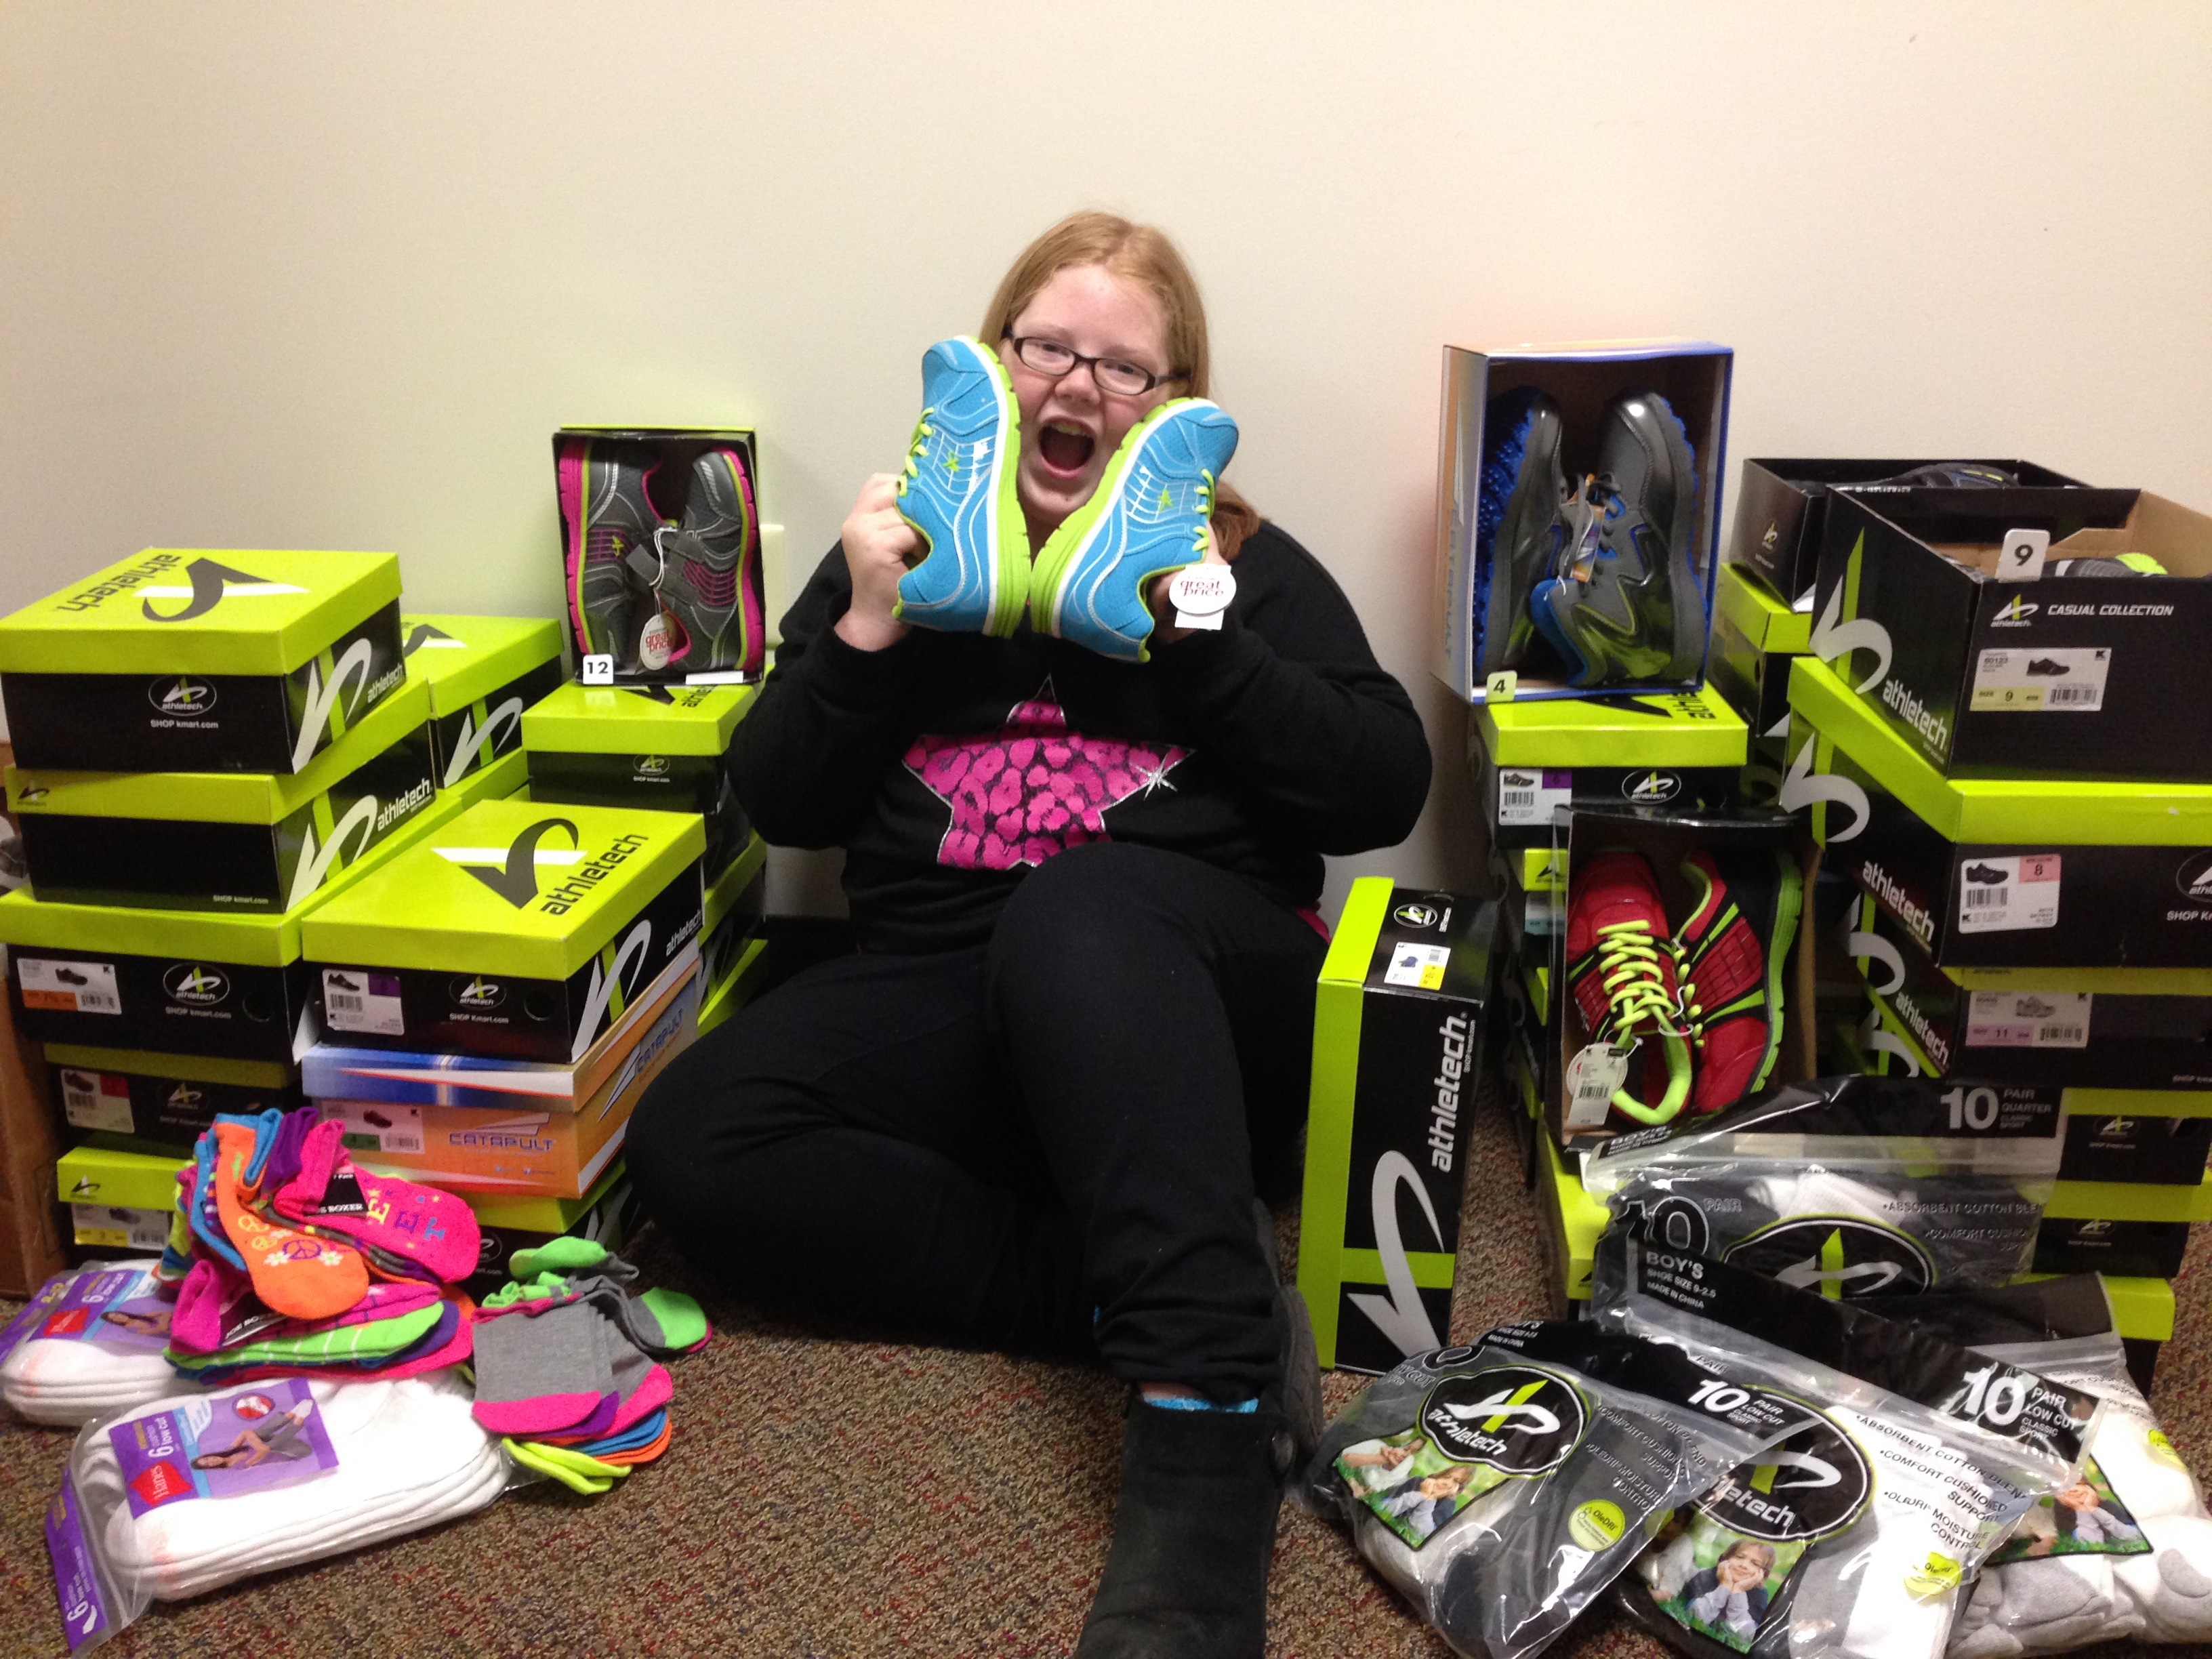 Kamrie donating 37 pairs of shoes and socks to Dover Elementary School